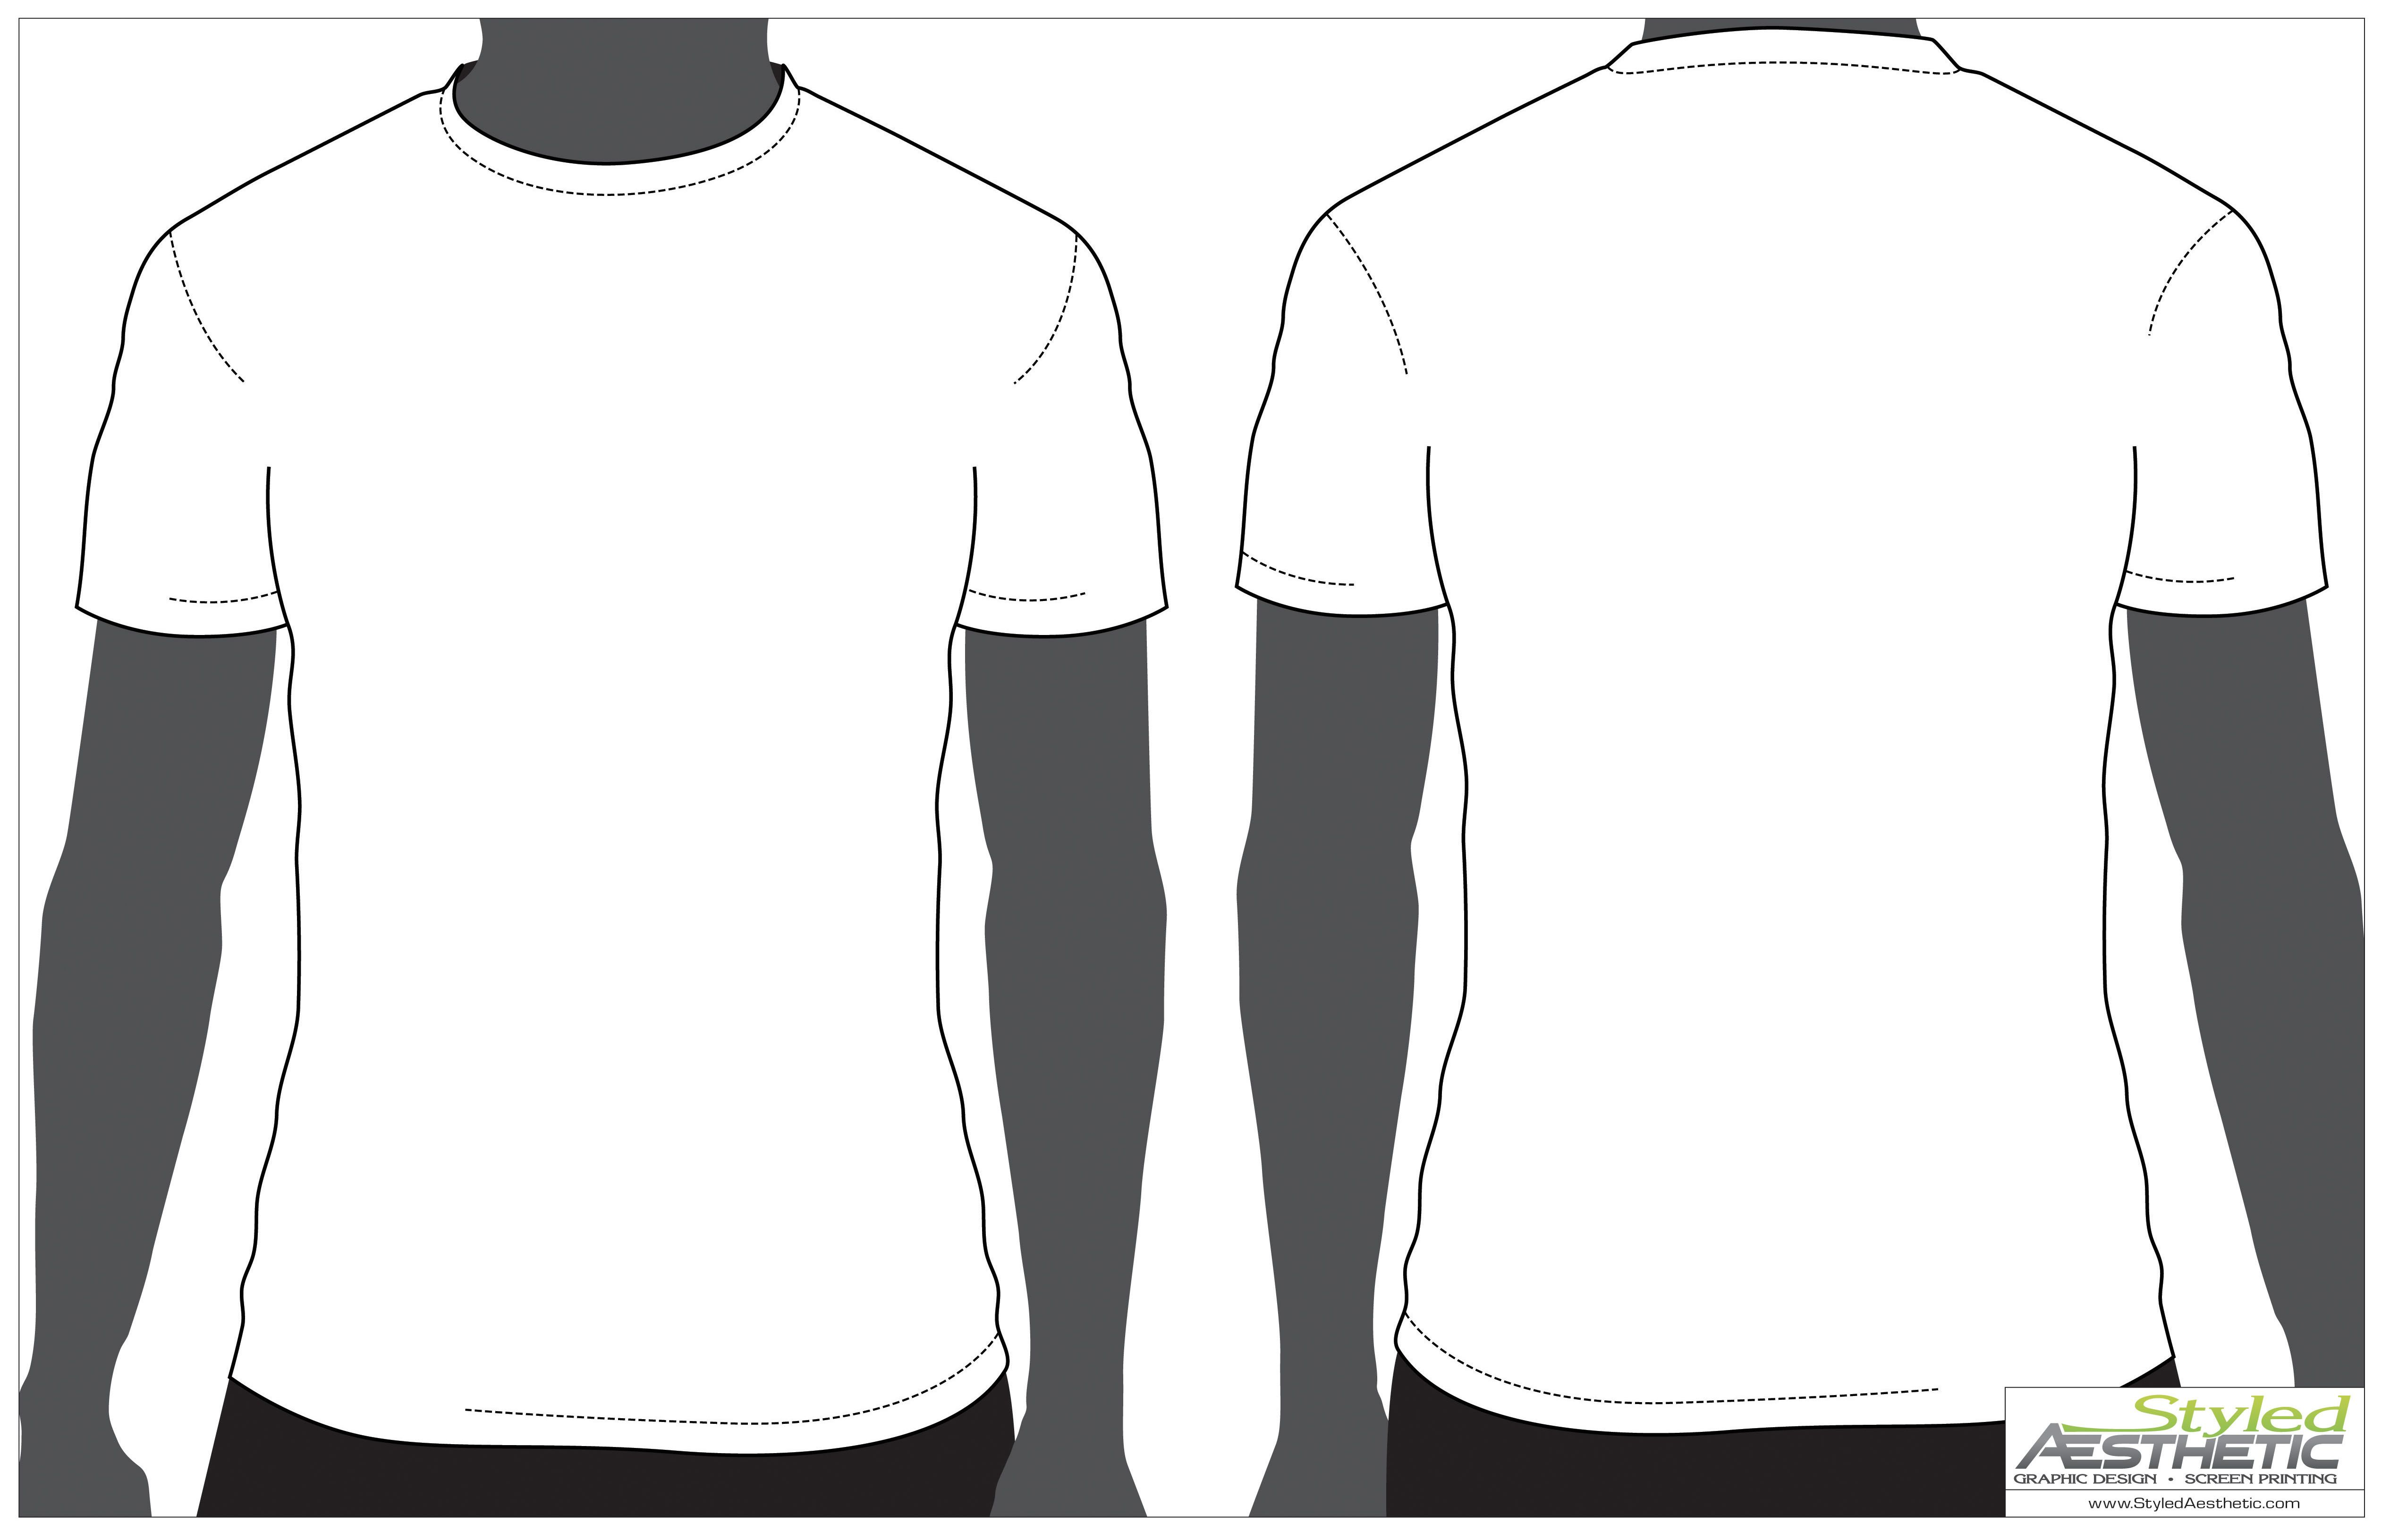 Black t shirt vector front and back - T Shirt Template